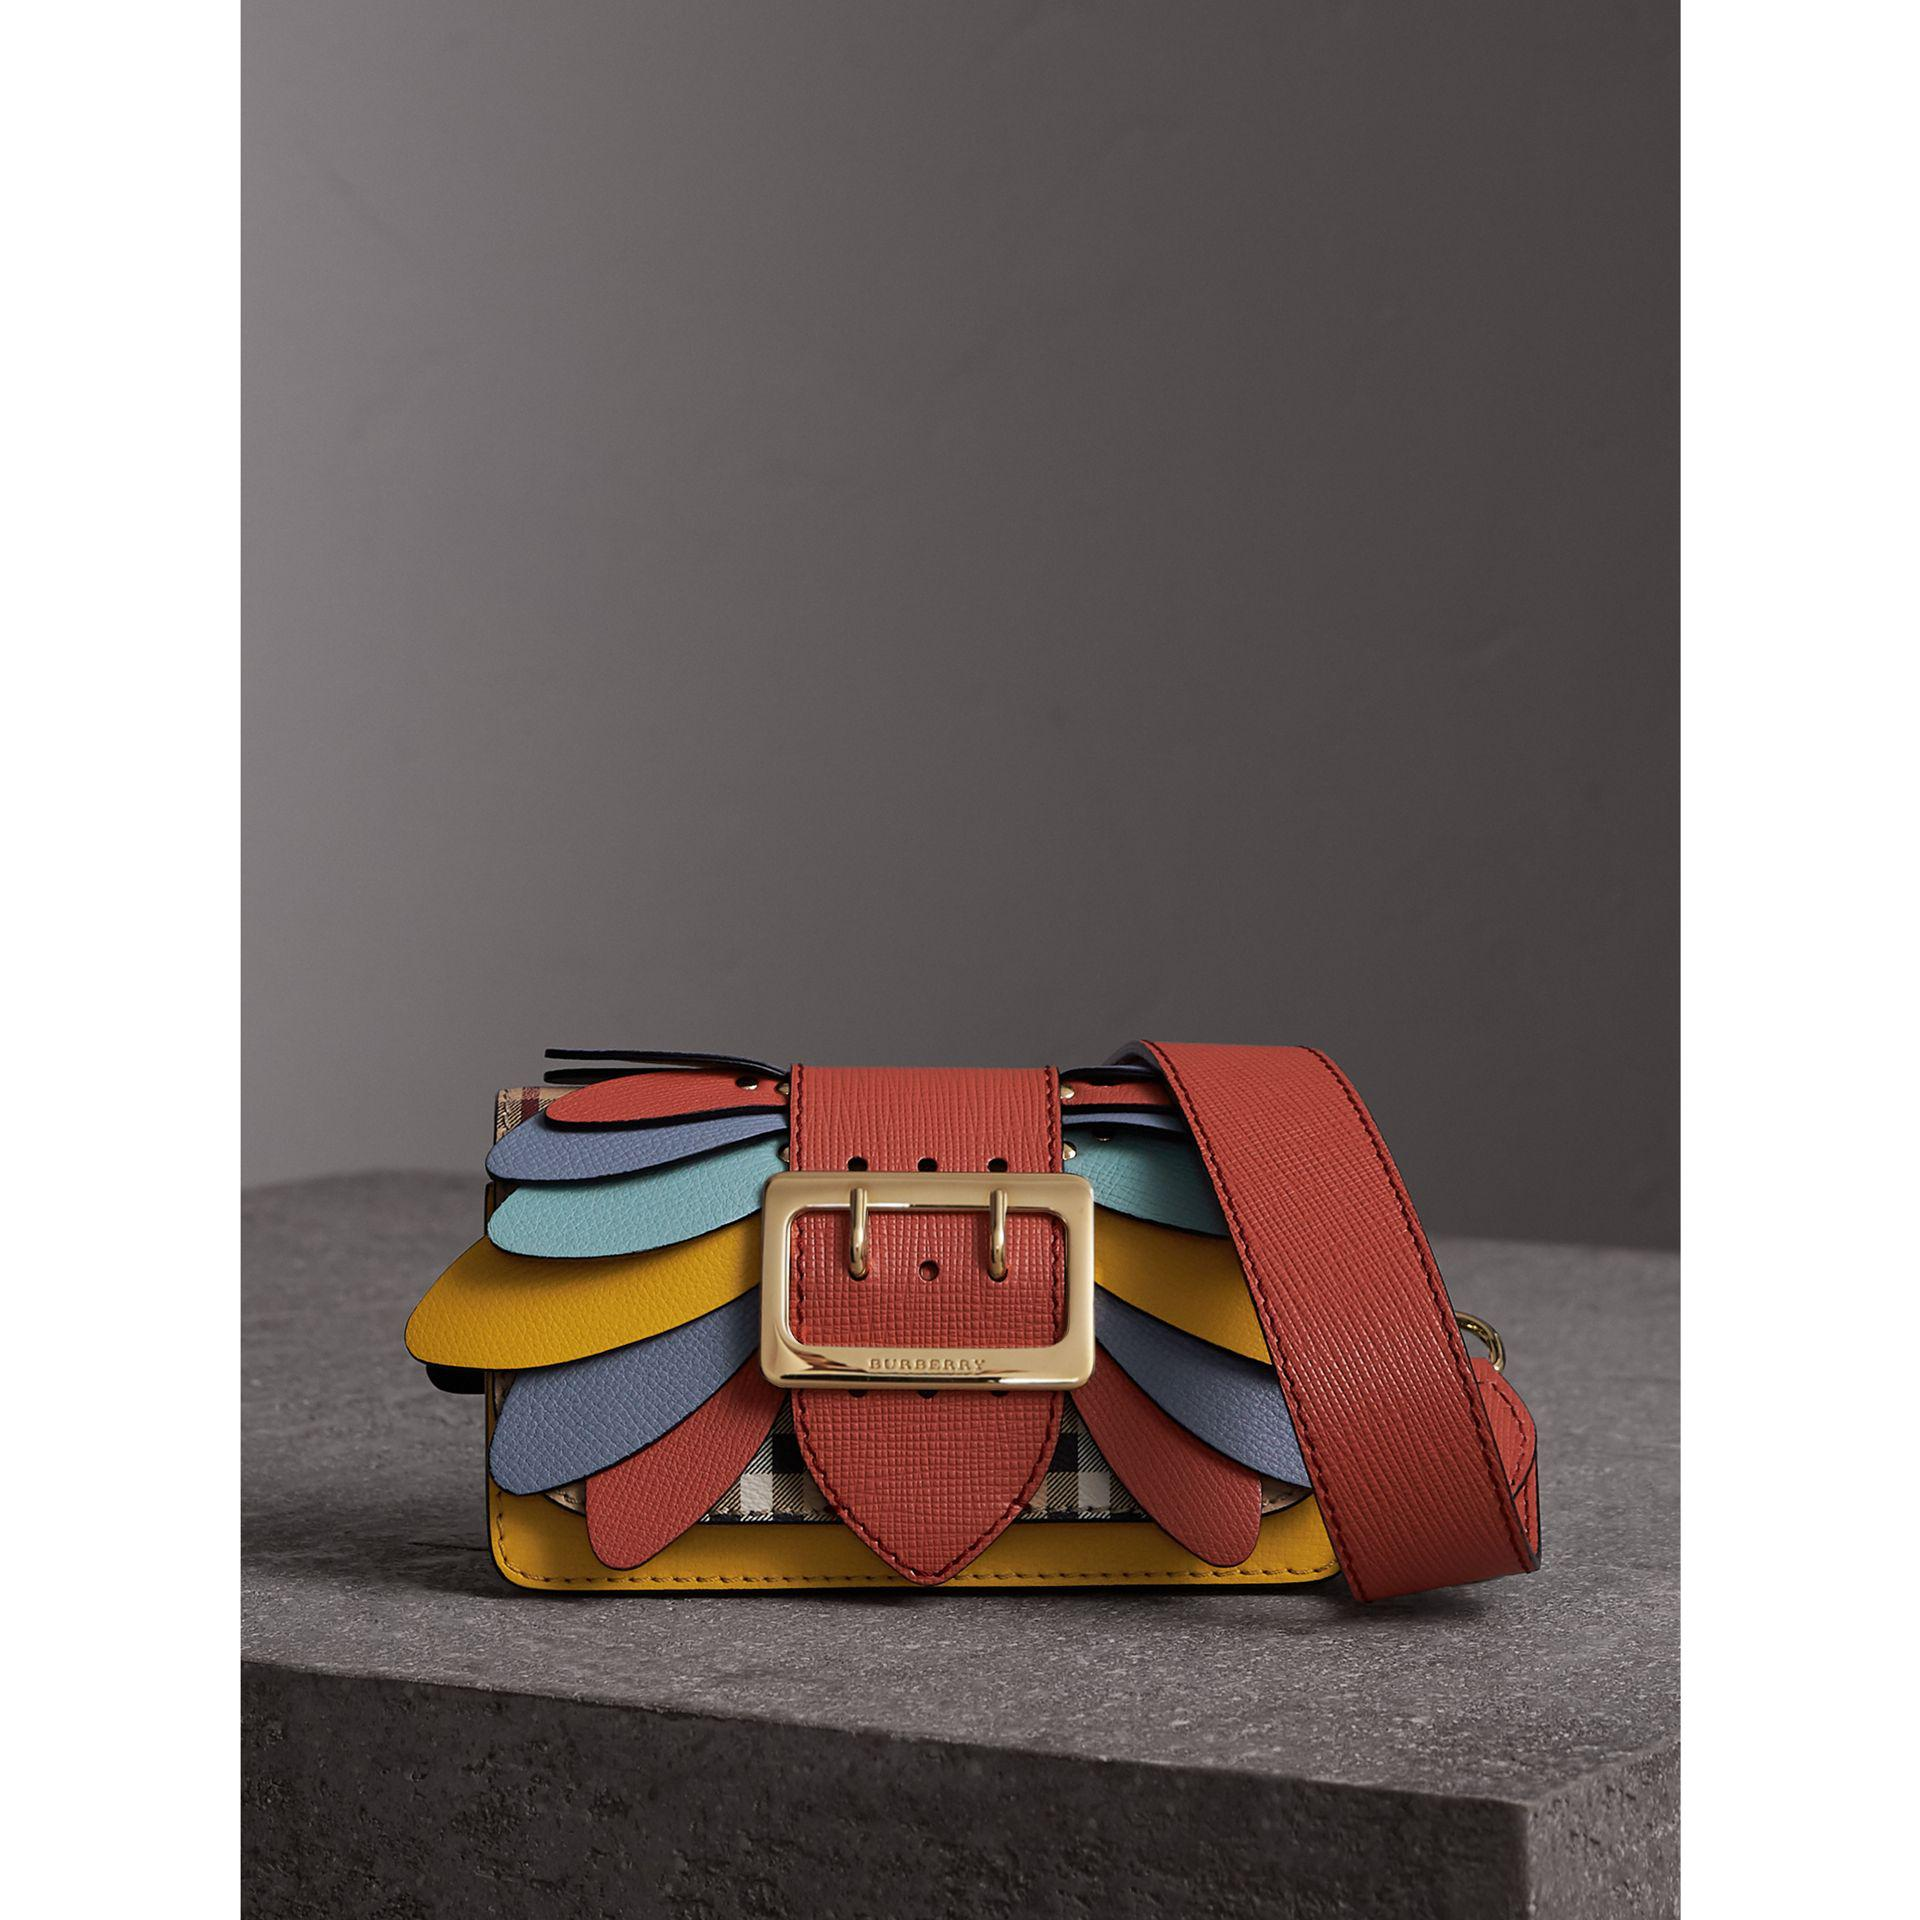 Lyst - Burberry The Small Buckle Bag In Haymarket Check And Leather 5513beebc4914